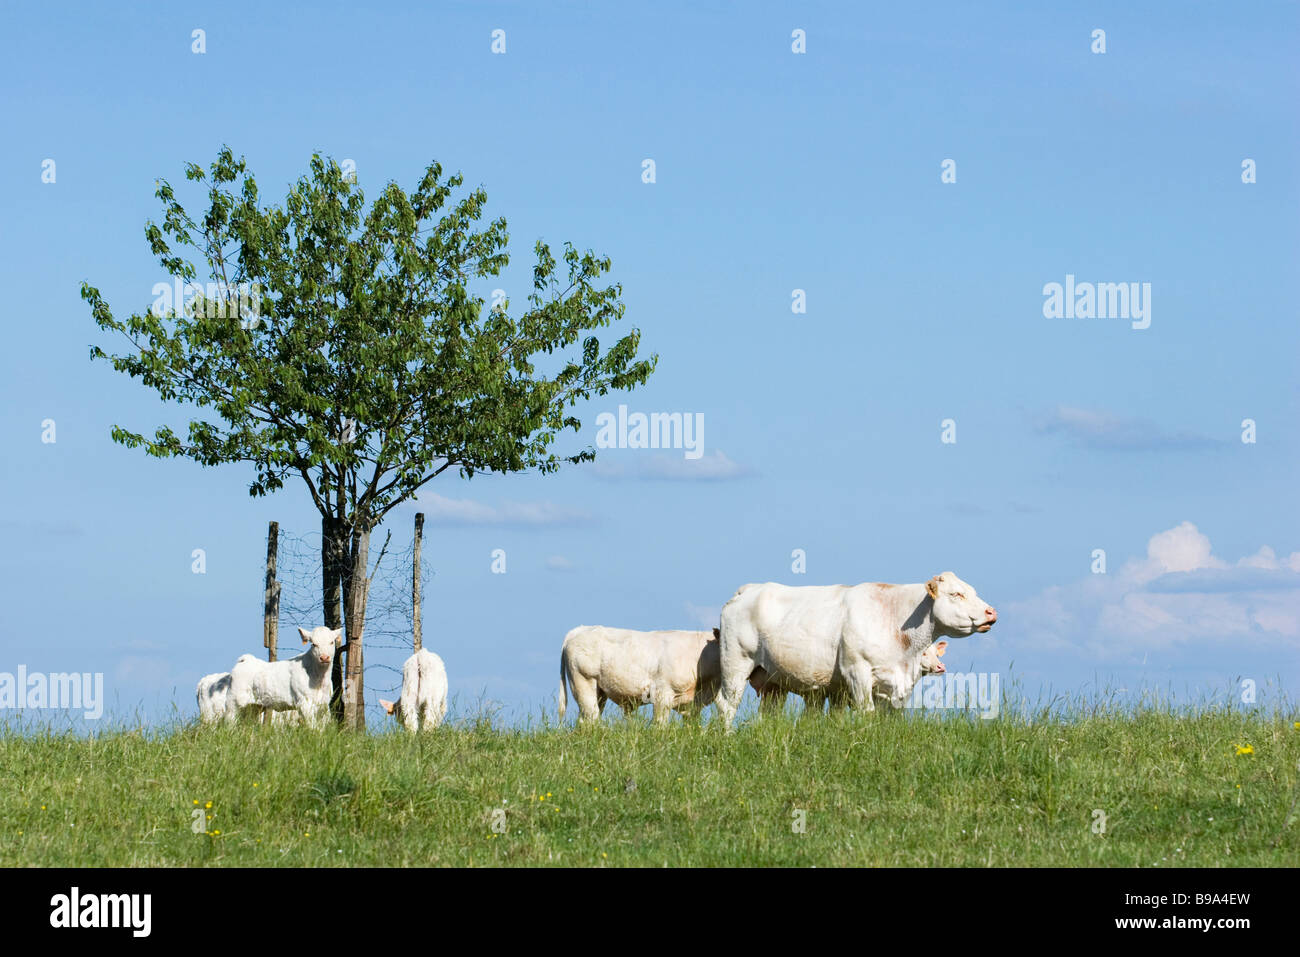 White cattle in pasture - Stock Image